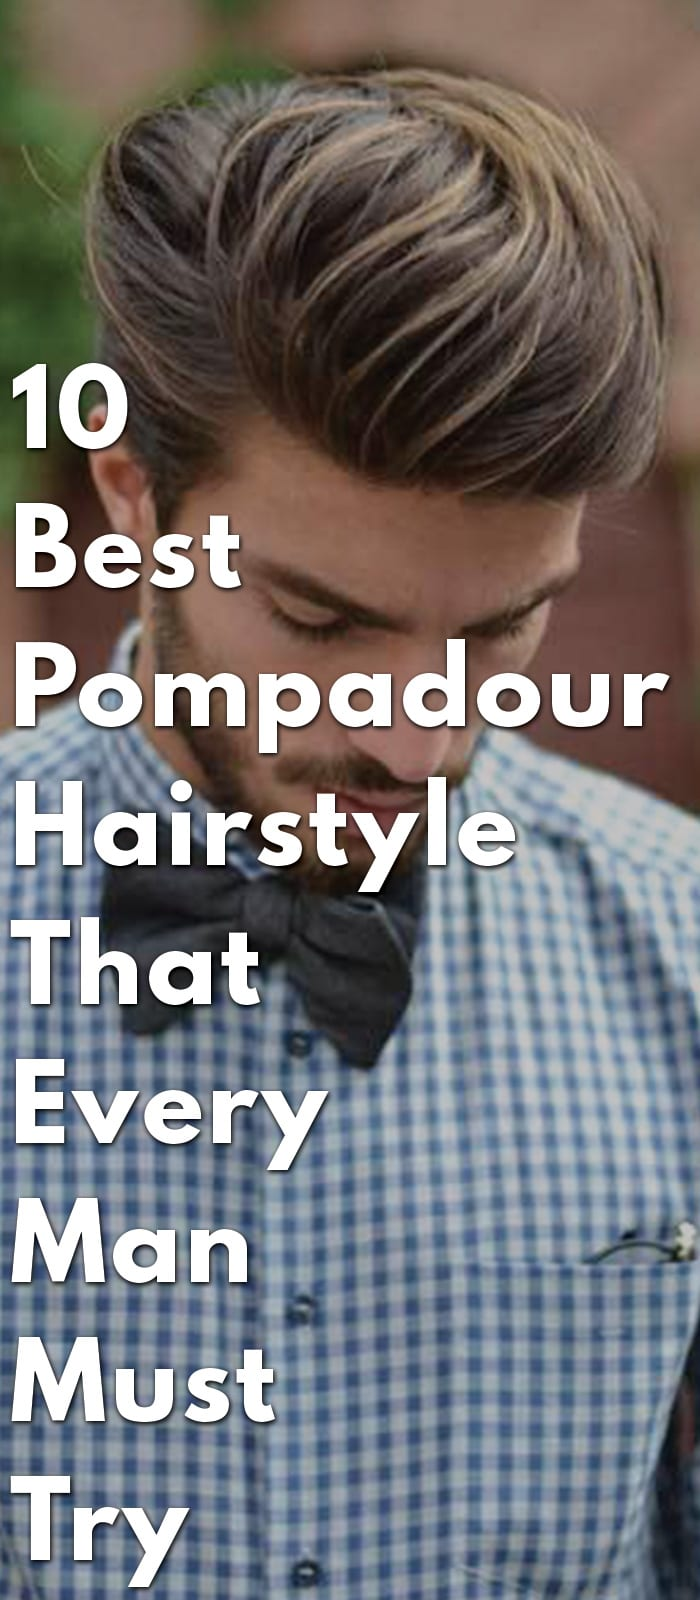 10-Best-Pompadour-Hairstyle-That-Every-Man-Must-Try-In-2018